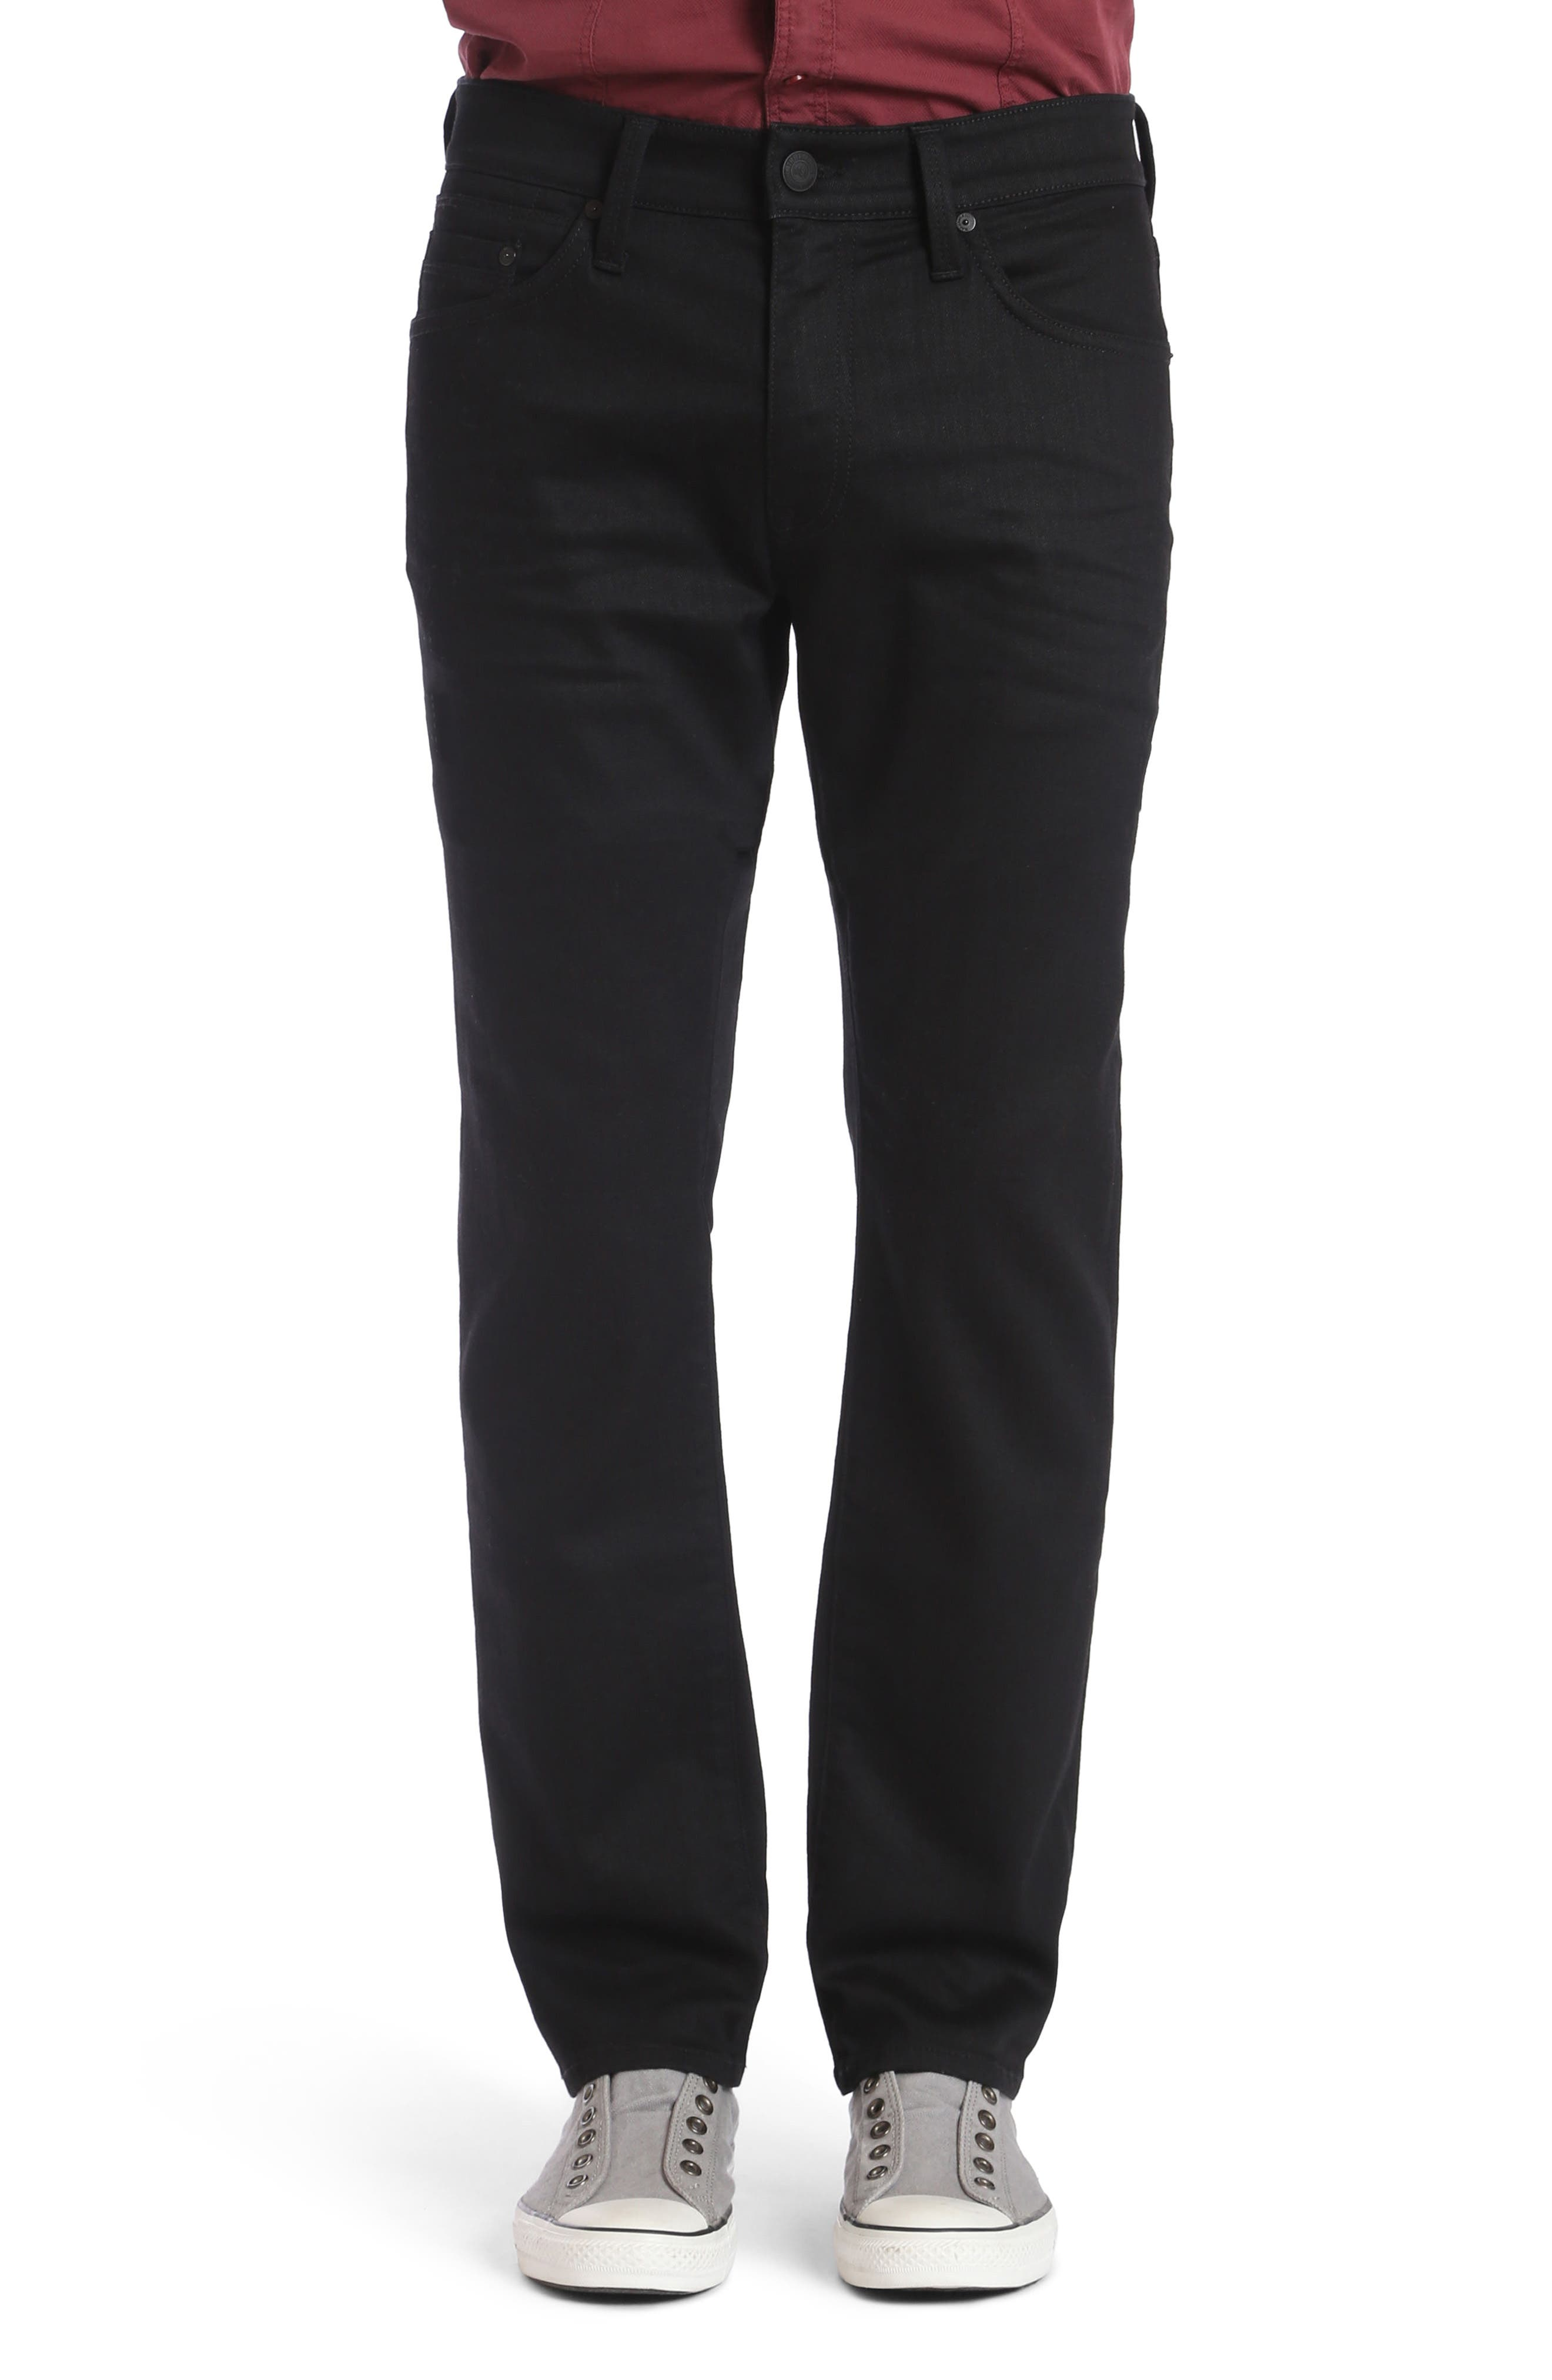 Alternate Image 1 Selected - Mavi Jeans Zach Straight Fit Jeans (Black Brushed Williamsburg)